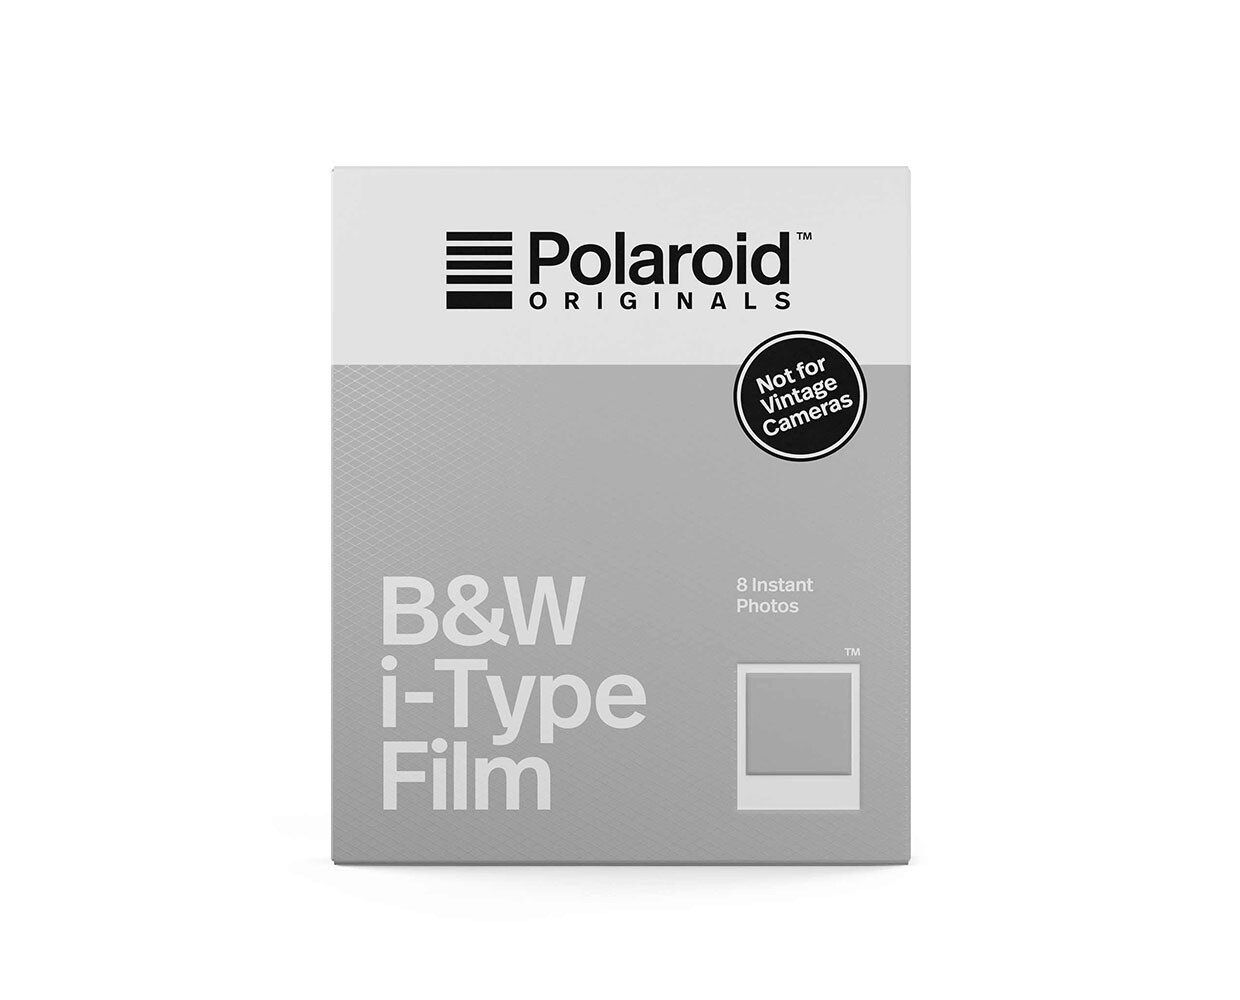 Polaroid Originals B%W i-Type Instant Film (8 Exposures)